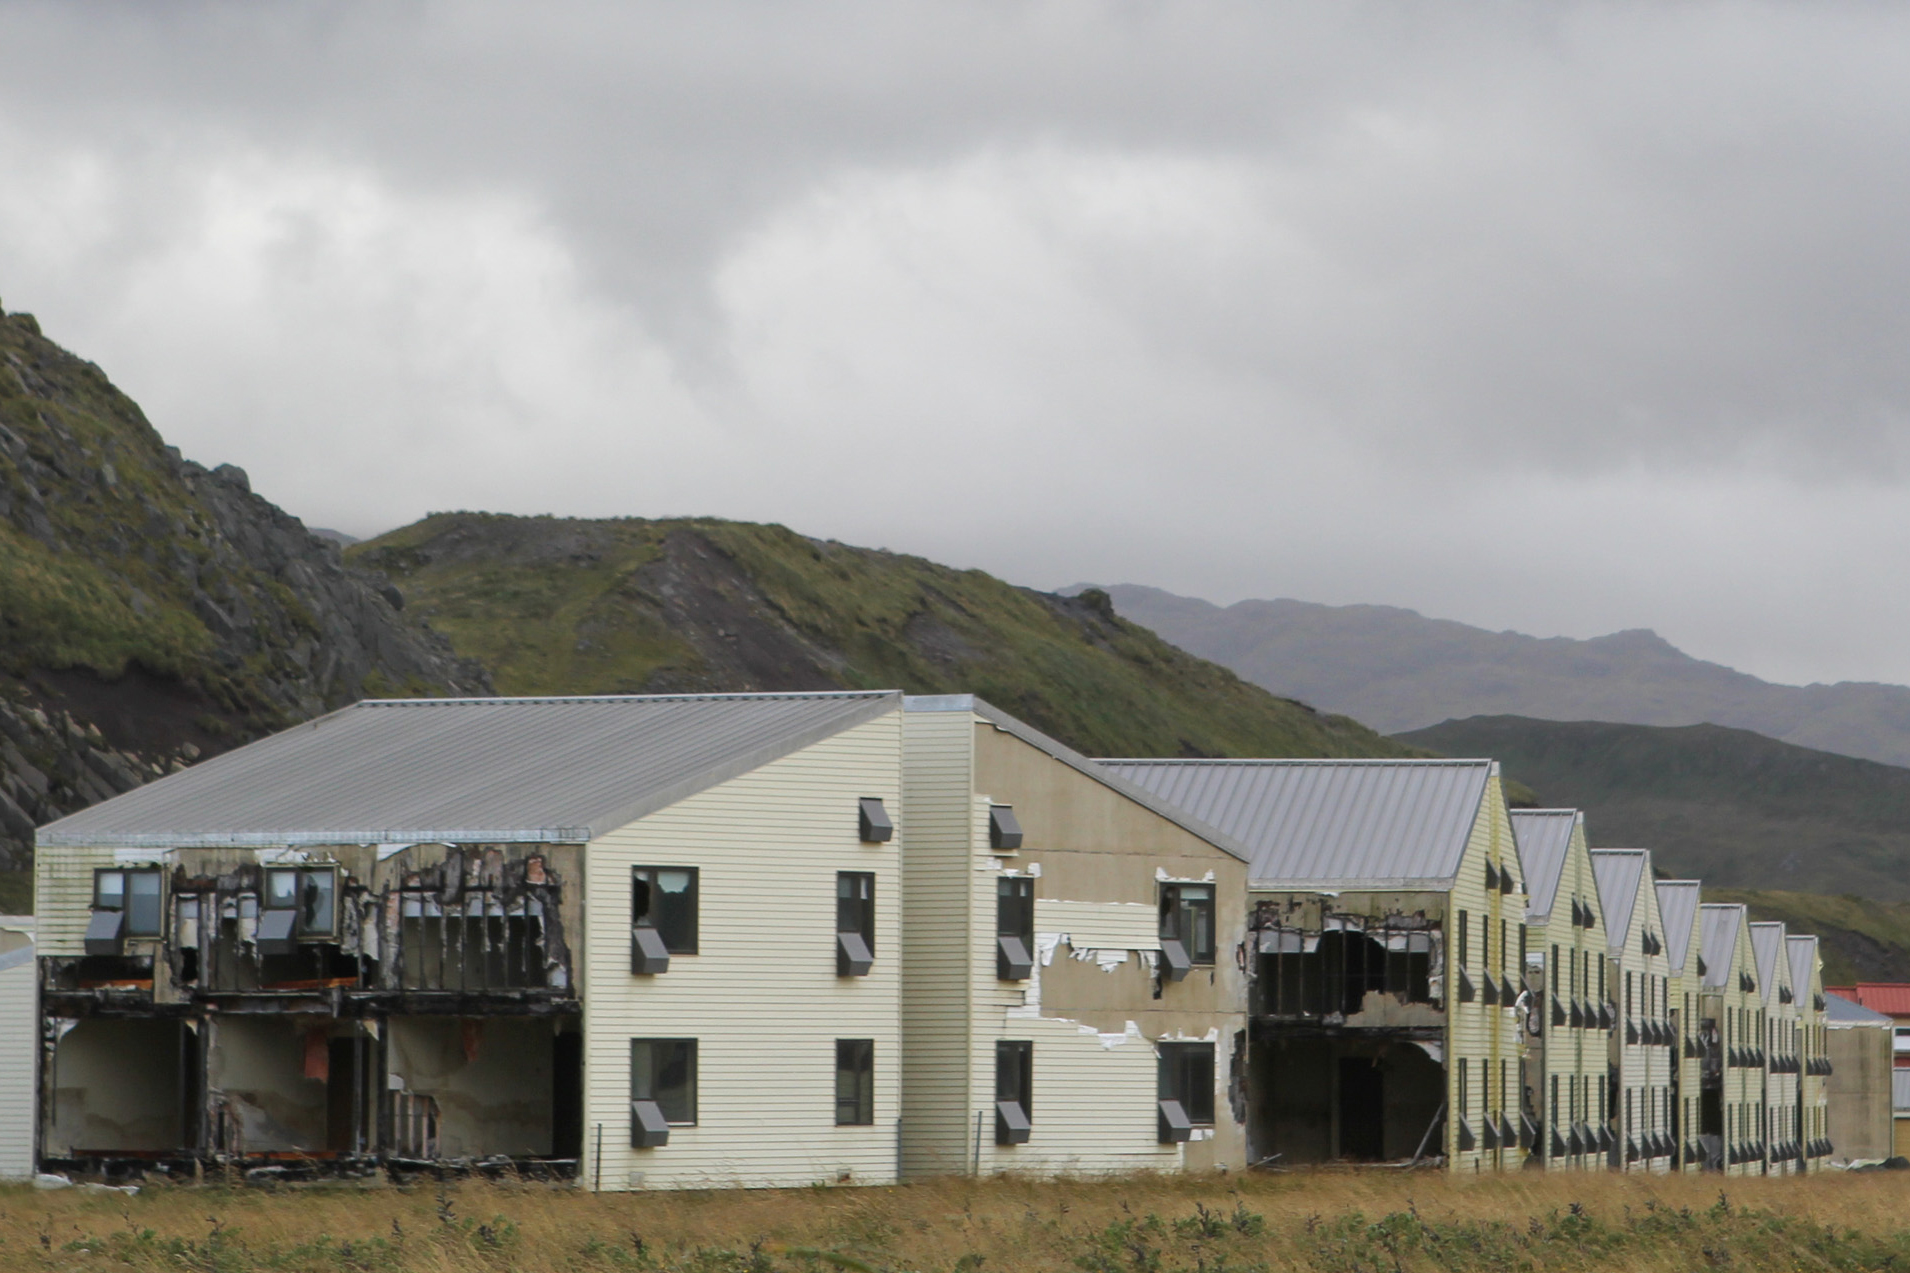 Caption: The military abandoned the Naval Air Facility Adak in 1997, and many of its buildings remain standing in disrepair. Some residents of the remote Alaska town hope a revived military interest in the Arctic will bring the military back., Credit:  Zachariah Hughes / Alaska Public Media